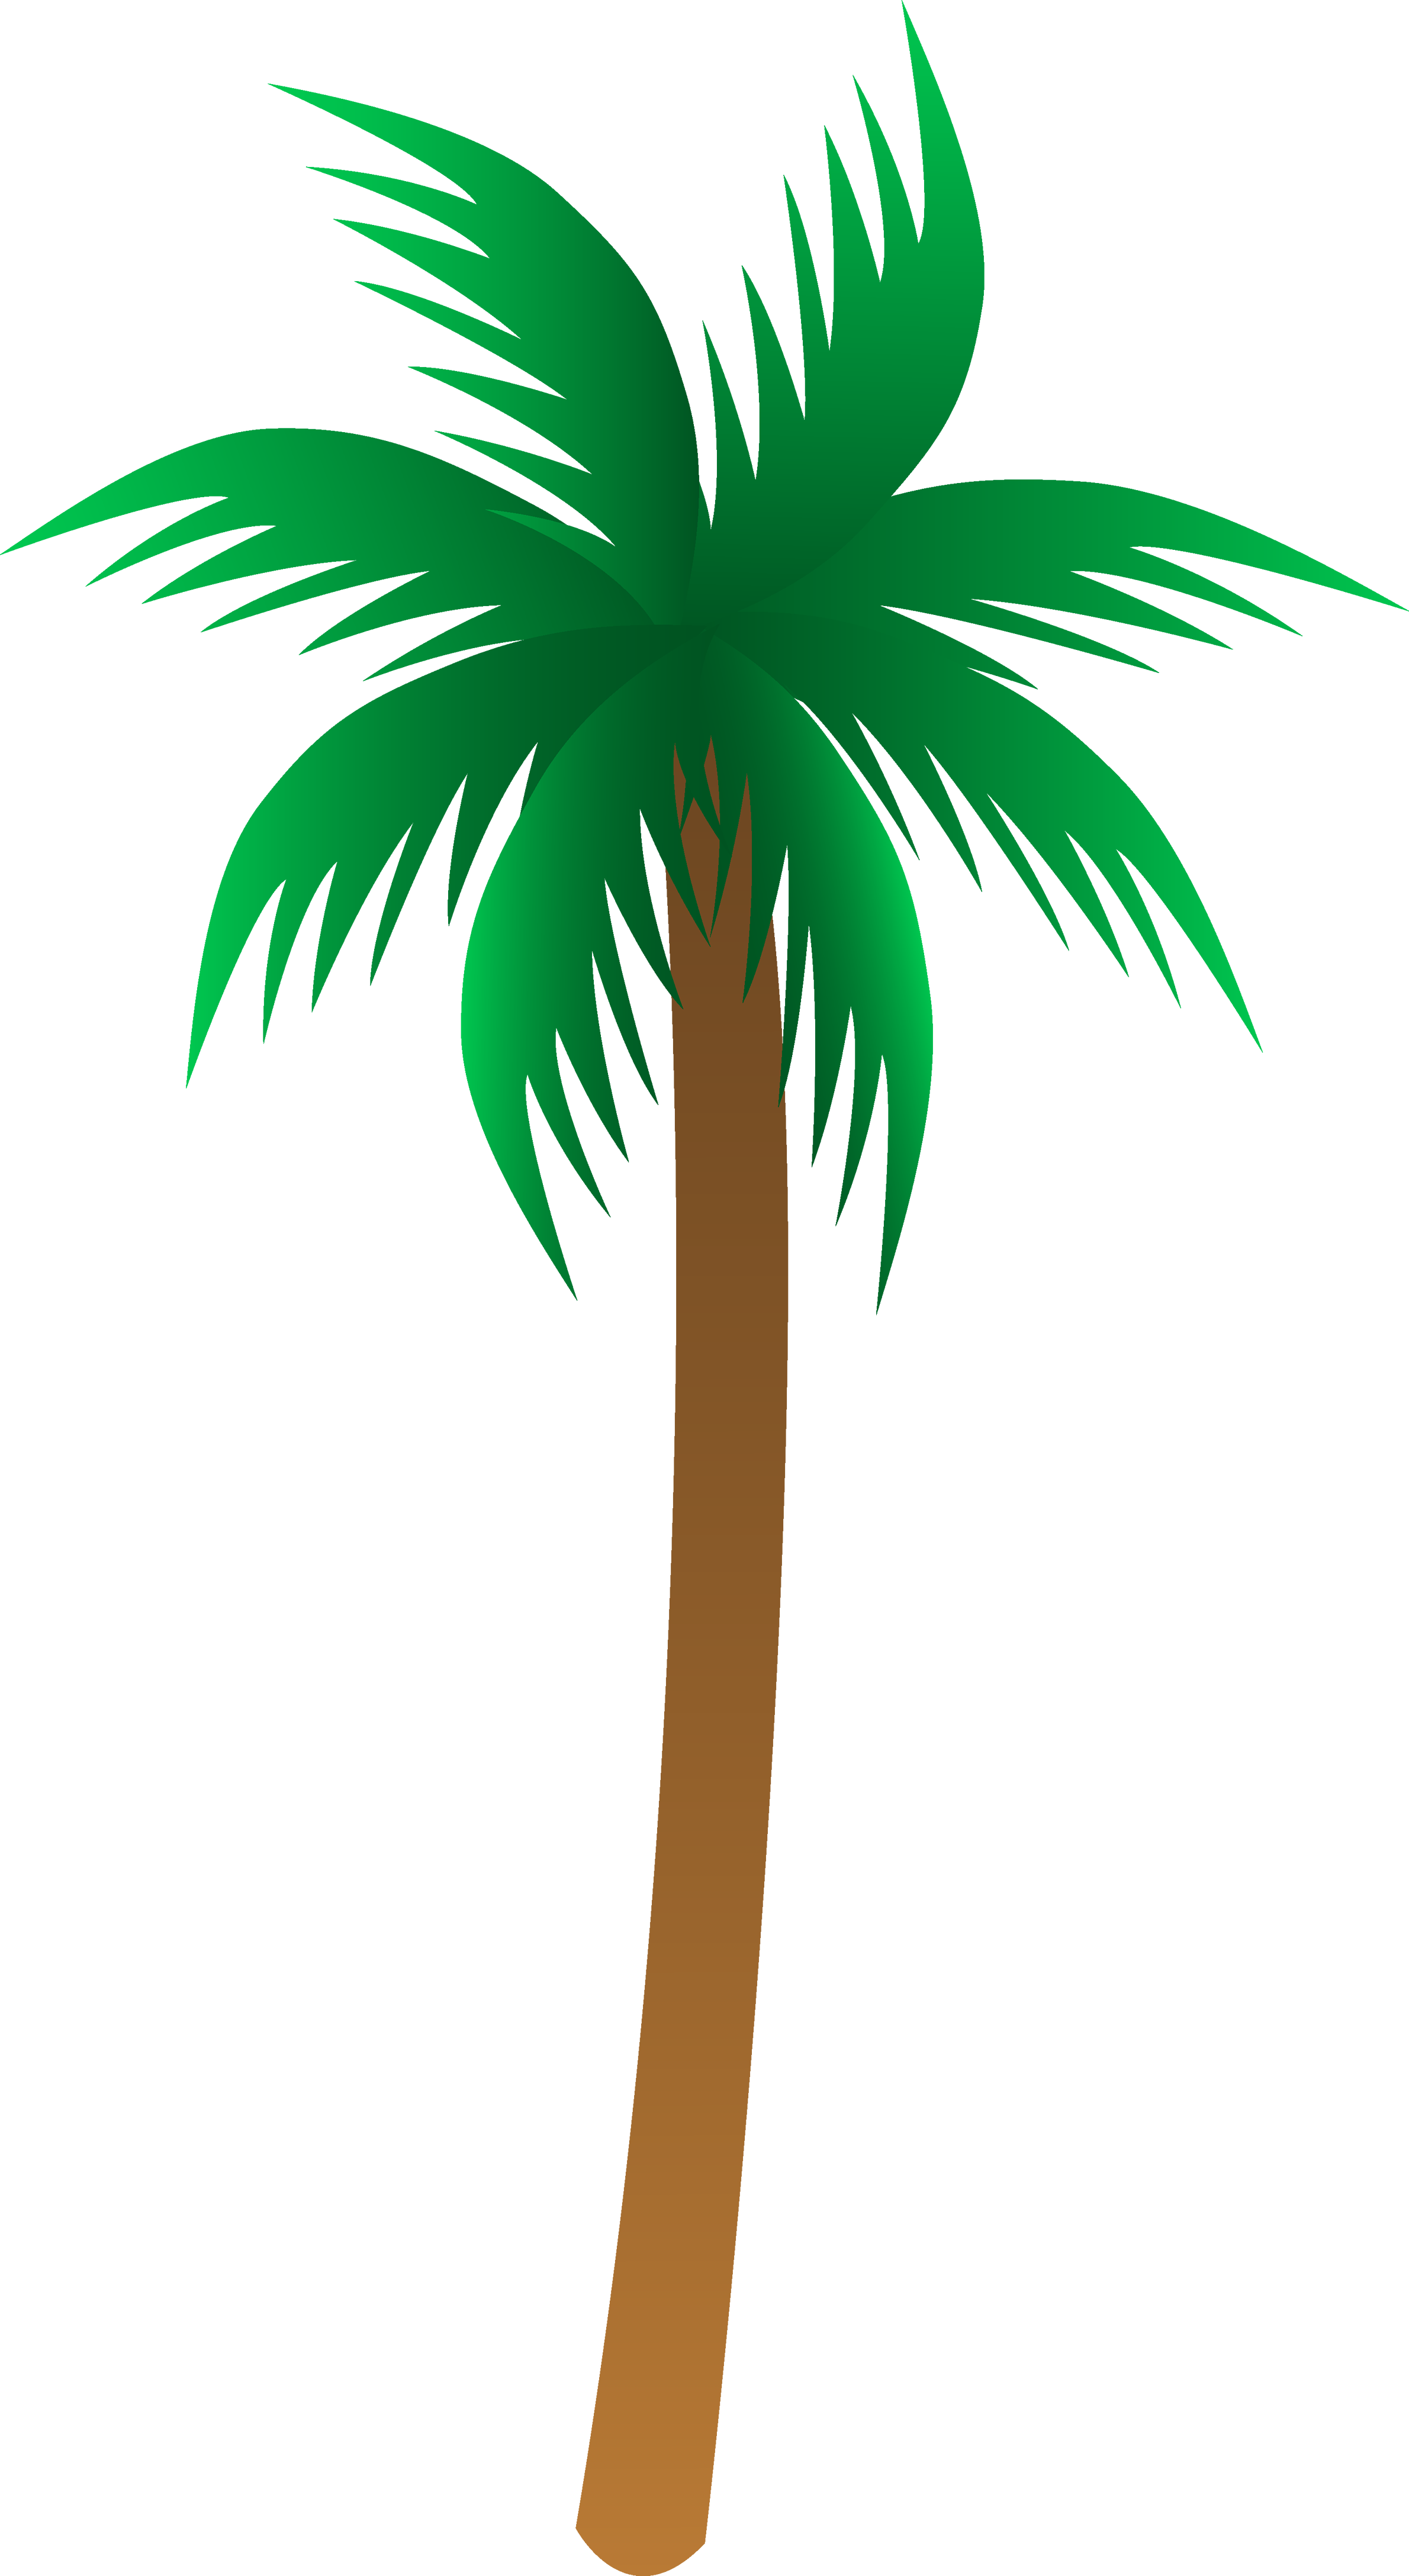 Palm tree clipart no background clip royalty free stock Palm Tree Clipart No Background clip royalty free stock